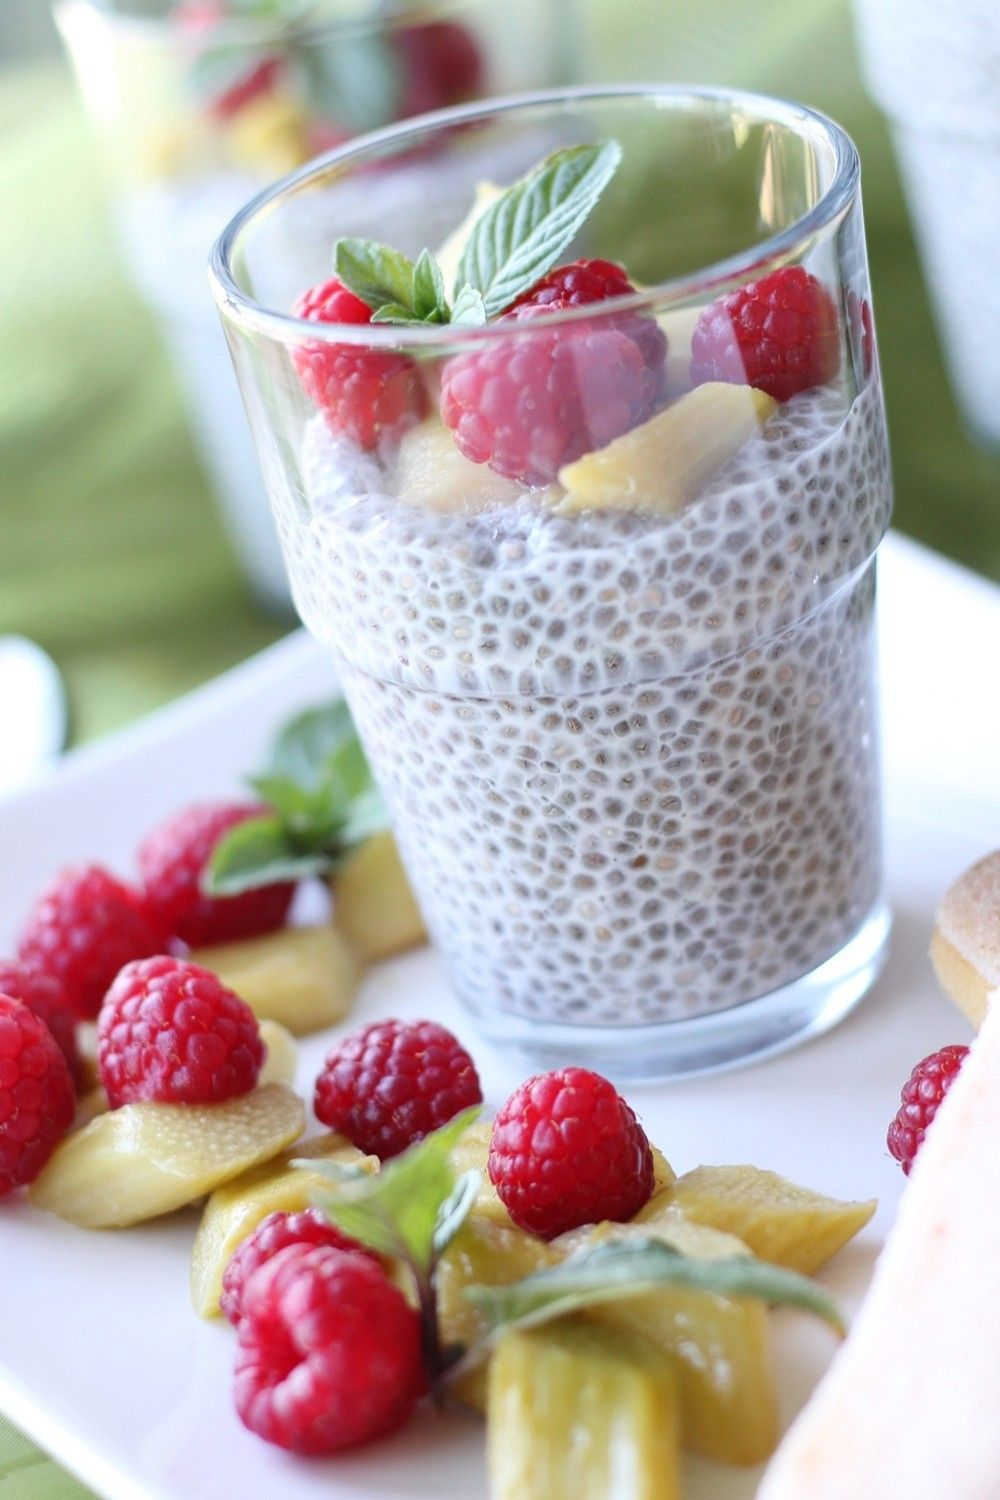 Recipe Chiapudding with coconut milk and fruit  Lavie Deboite  Chia Coconut Milk Pudding  Sweepstakes  Lavie Deboite